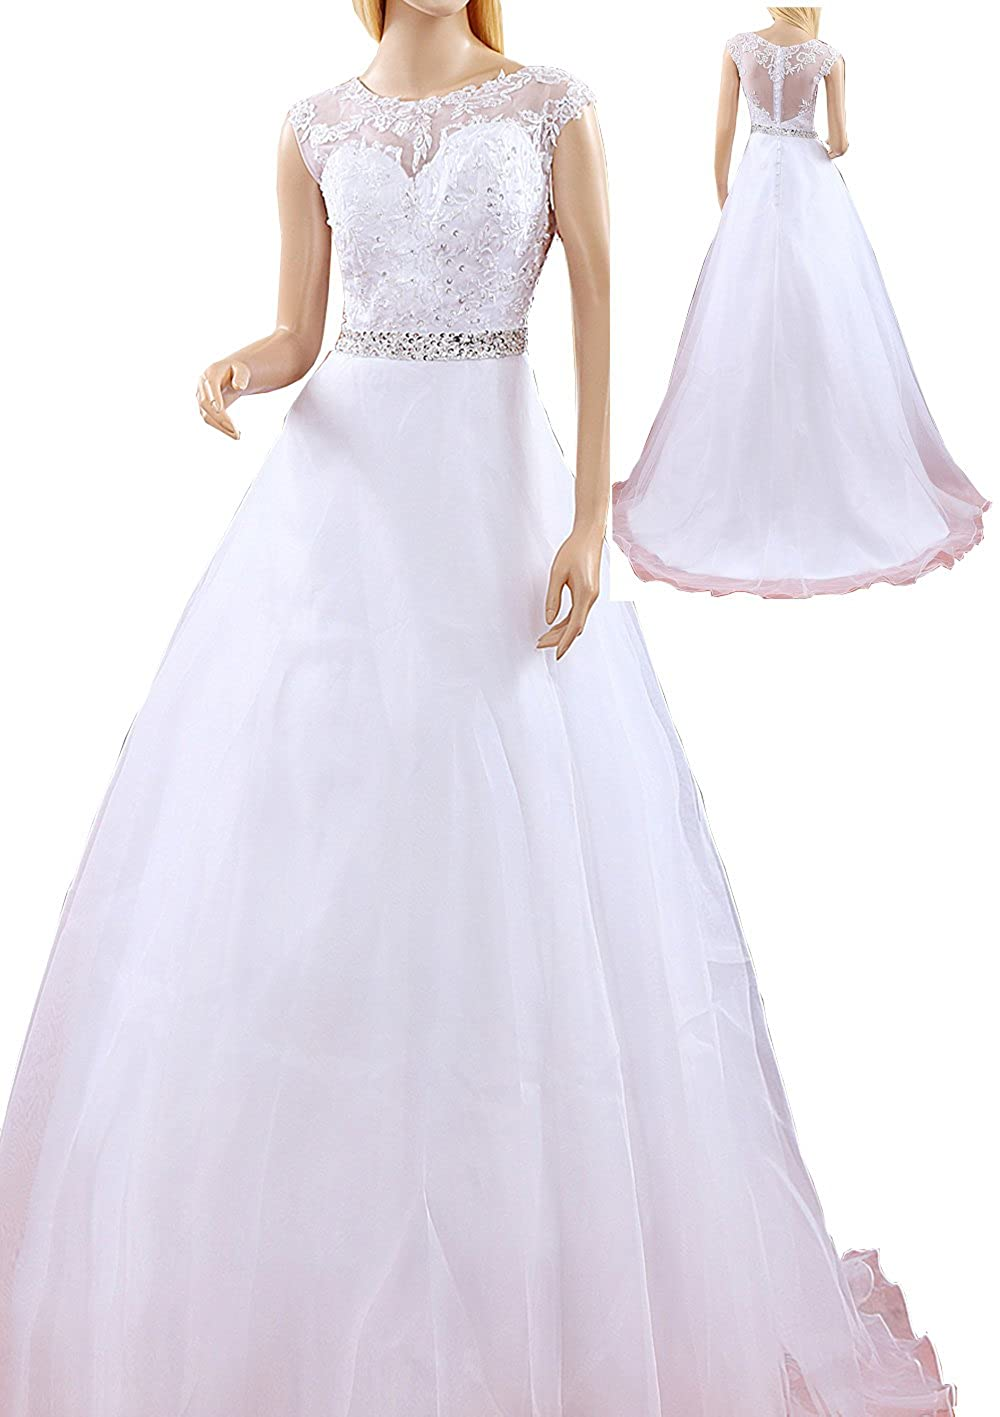 15e03904374 Details  Crystal Beads Sweetheart Ball Gown Built in Scale;Beading Sash  Floor length ball gown quinceanera dress with jewel embellished bodice